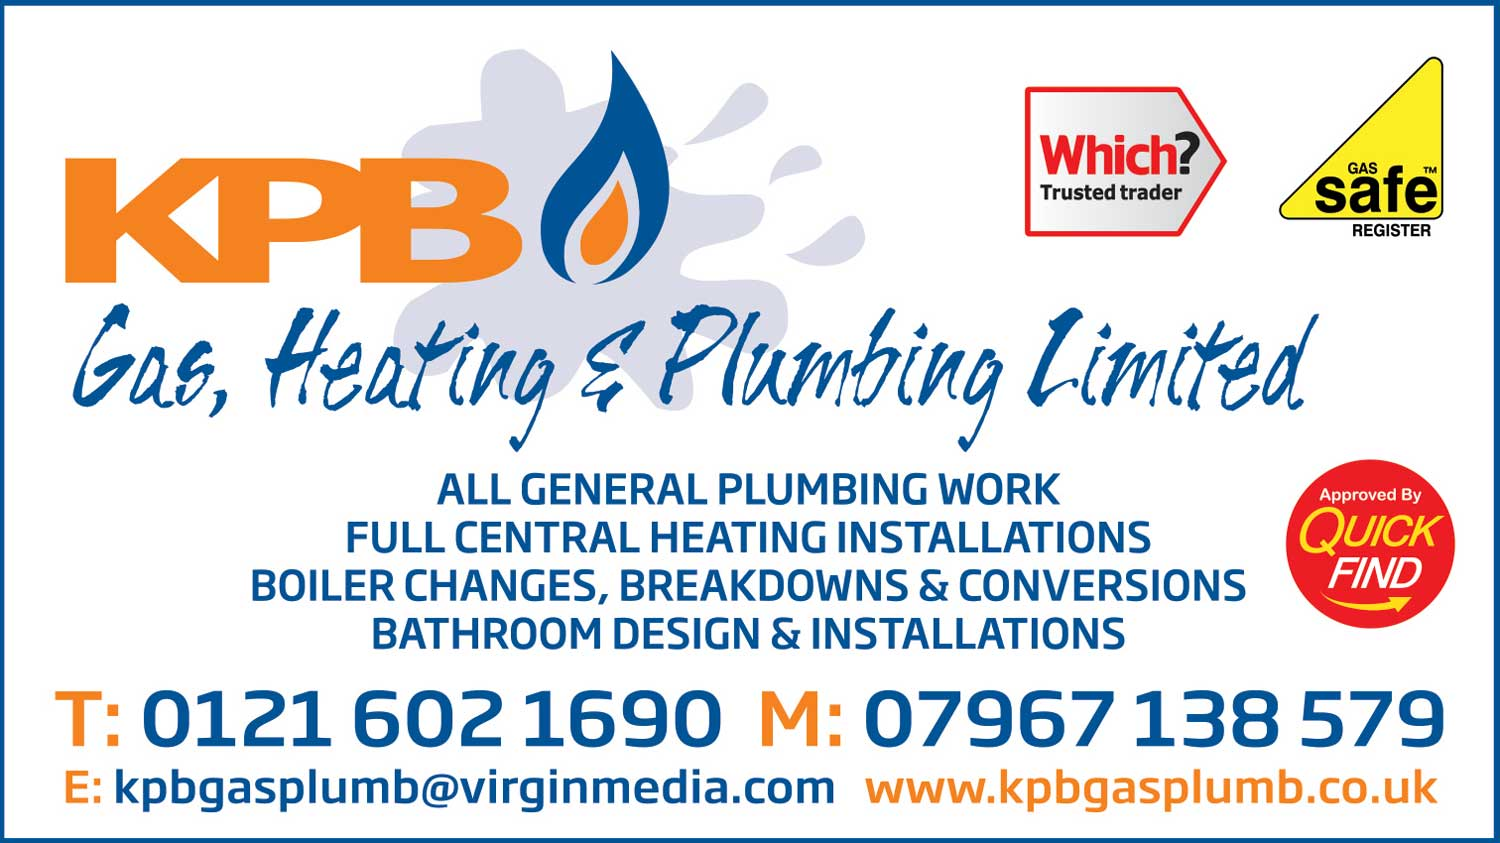 KPB Gas, Heating & Plumbing Ltd.